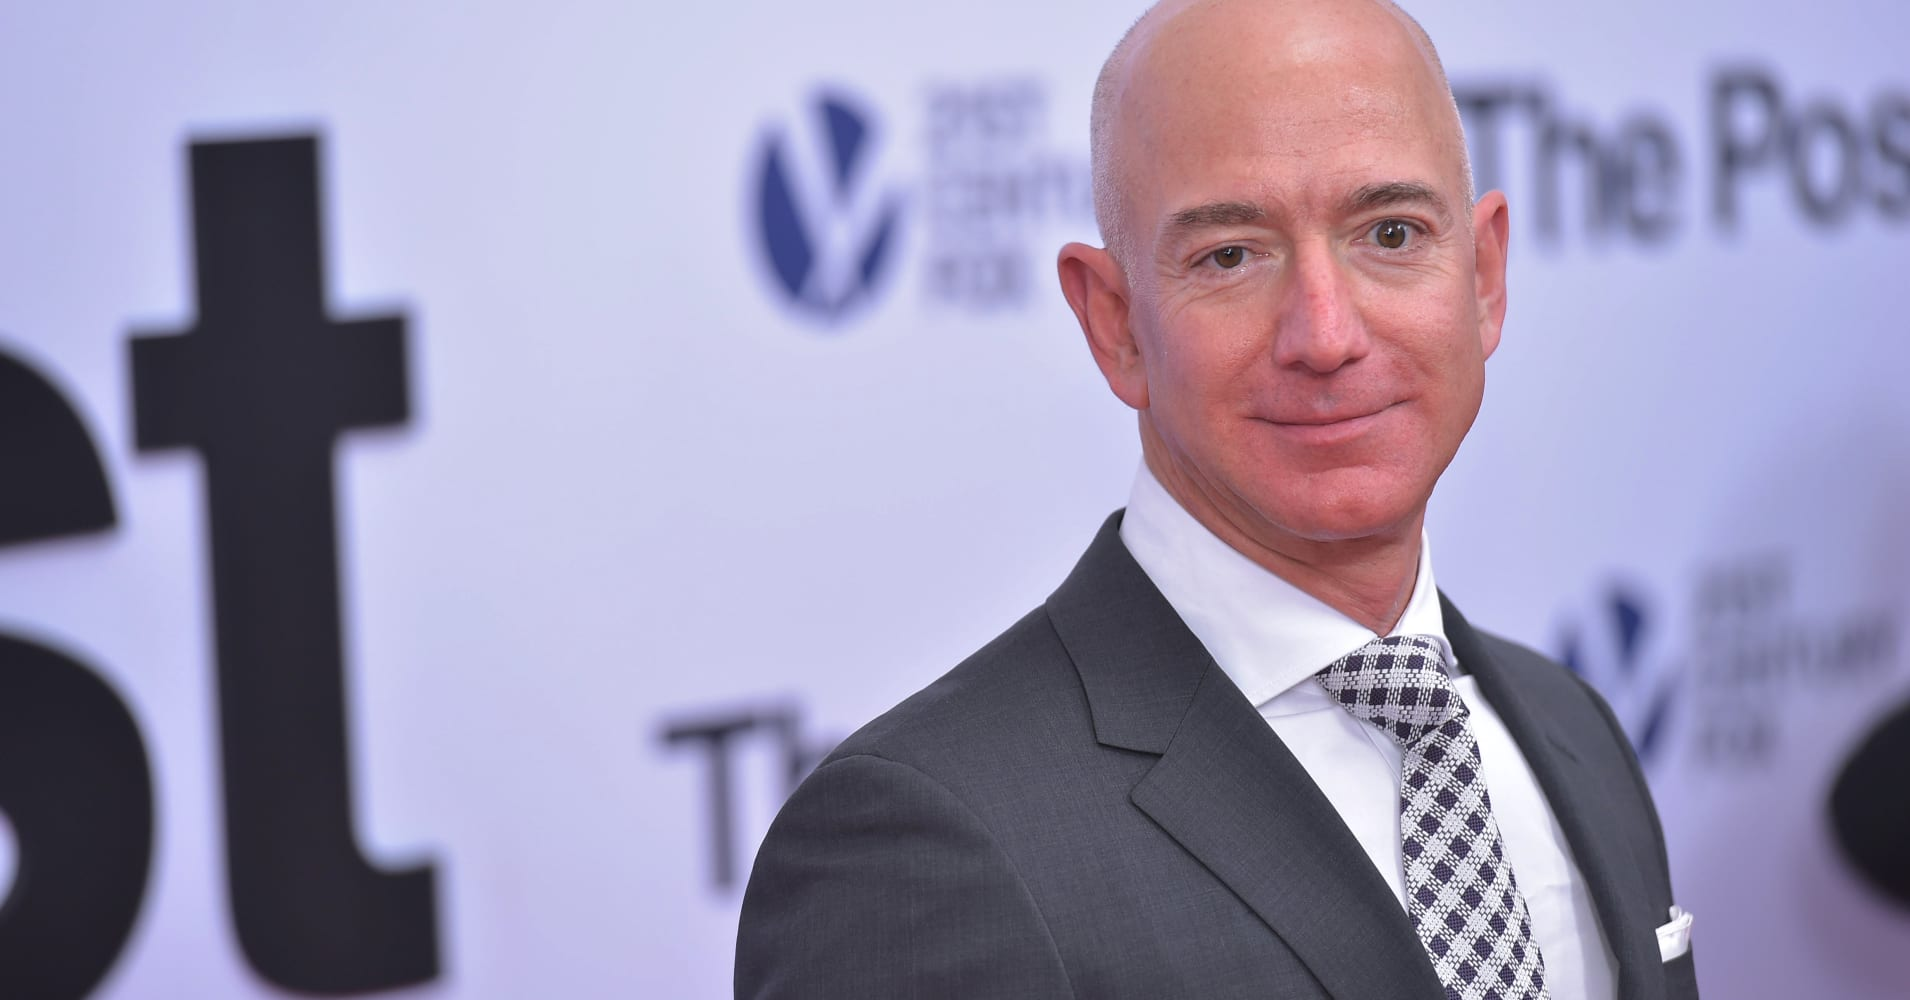 Amazon CEO Jeff Bezos arrives for the premiere of 'The Post' on December 14, 2017.